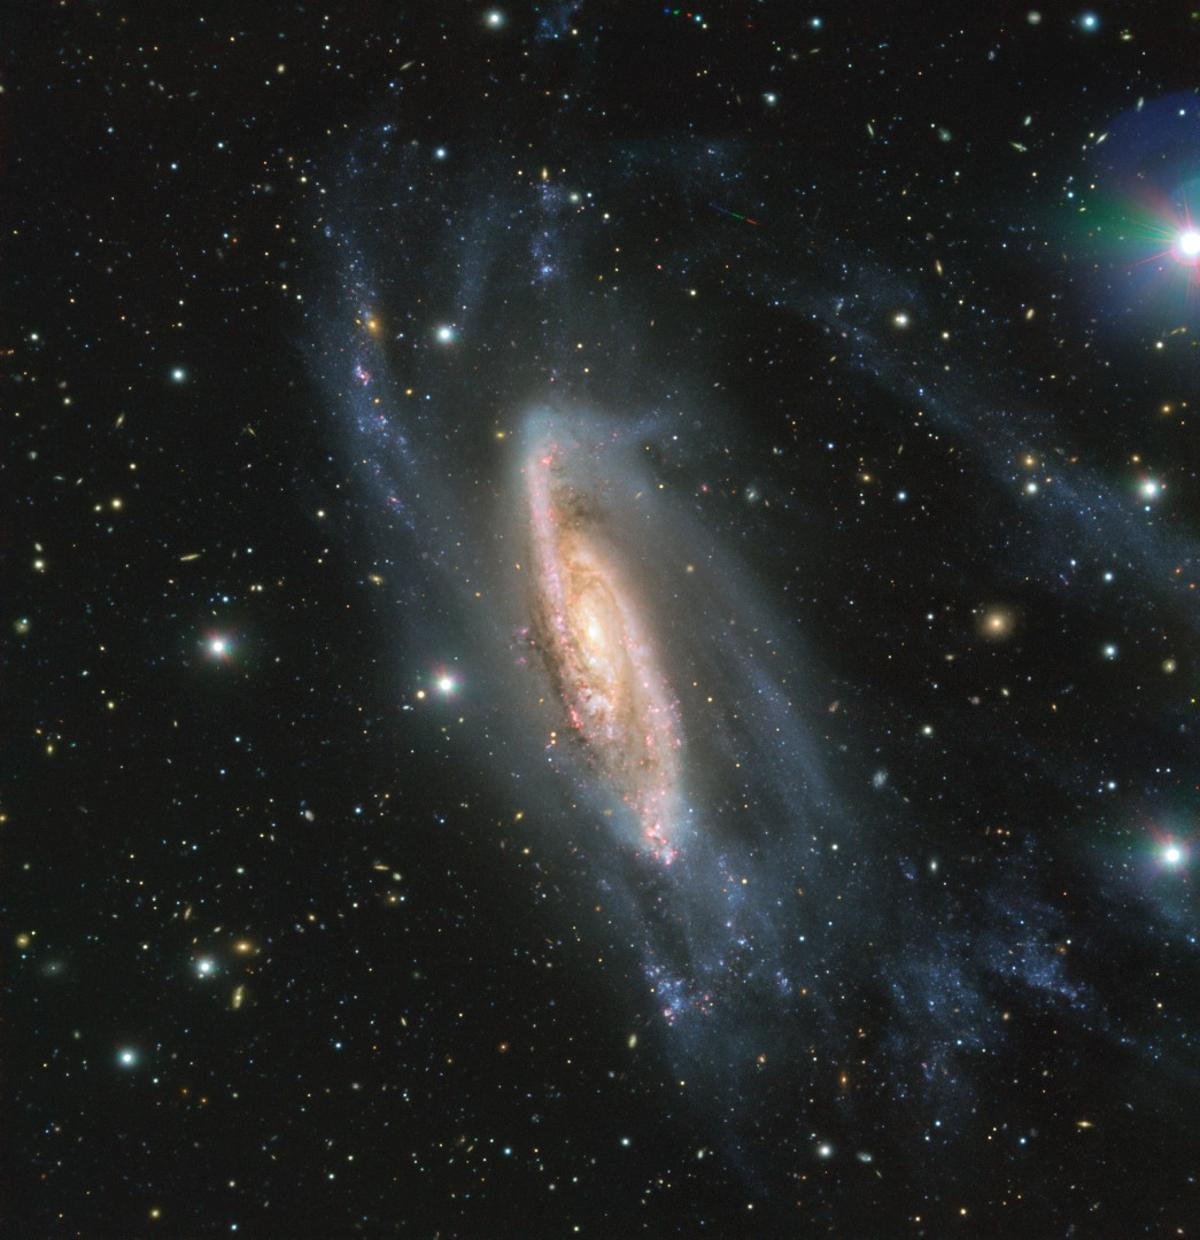 NGC 3981 imaged by the FORS2 instrument mounted on the ESO's Very Large Telescope